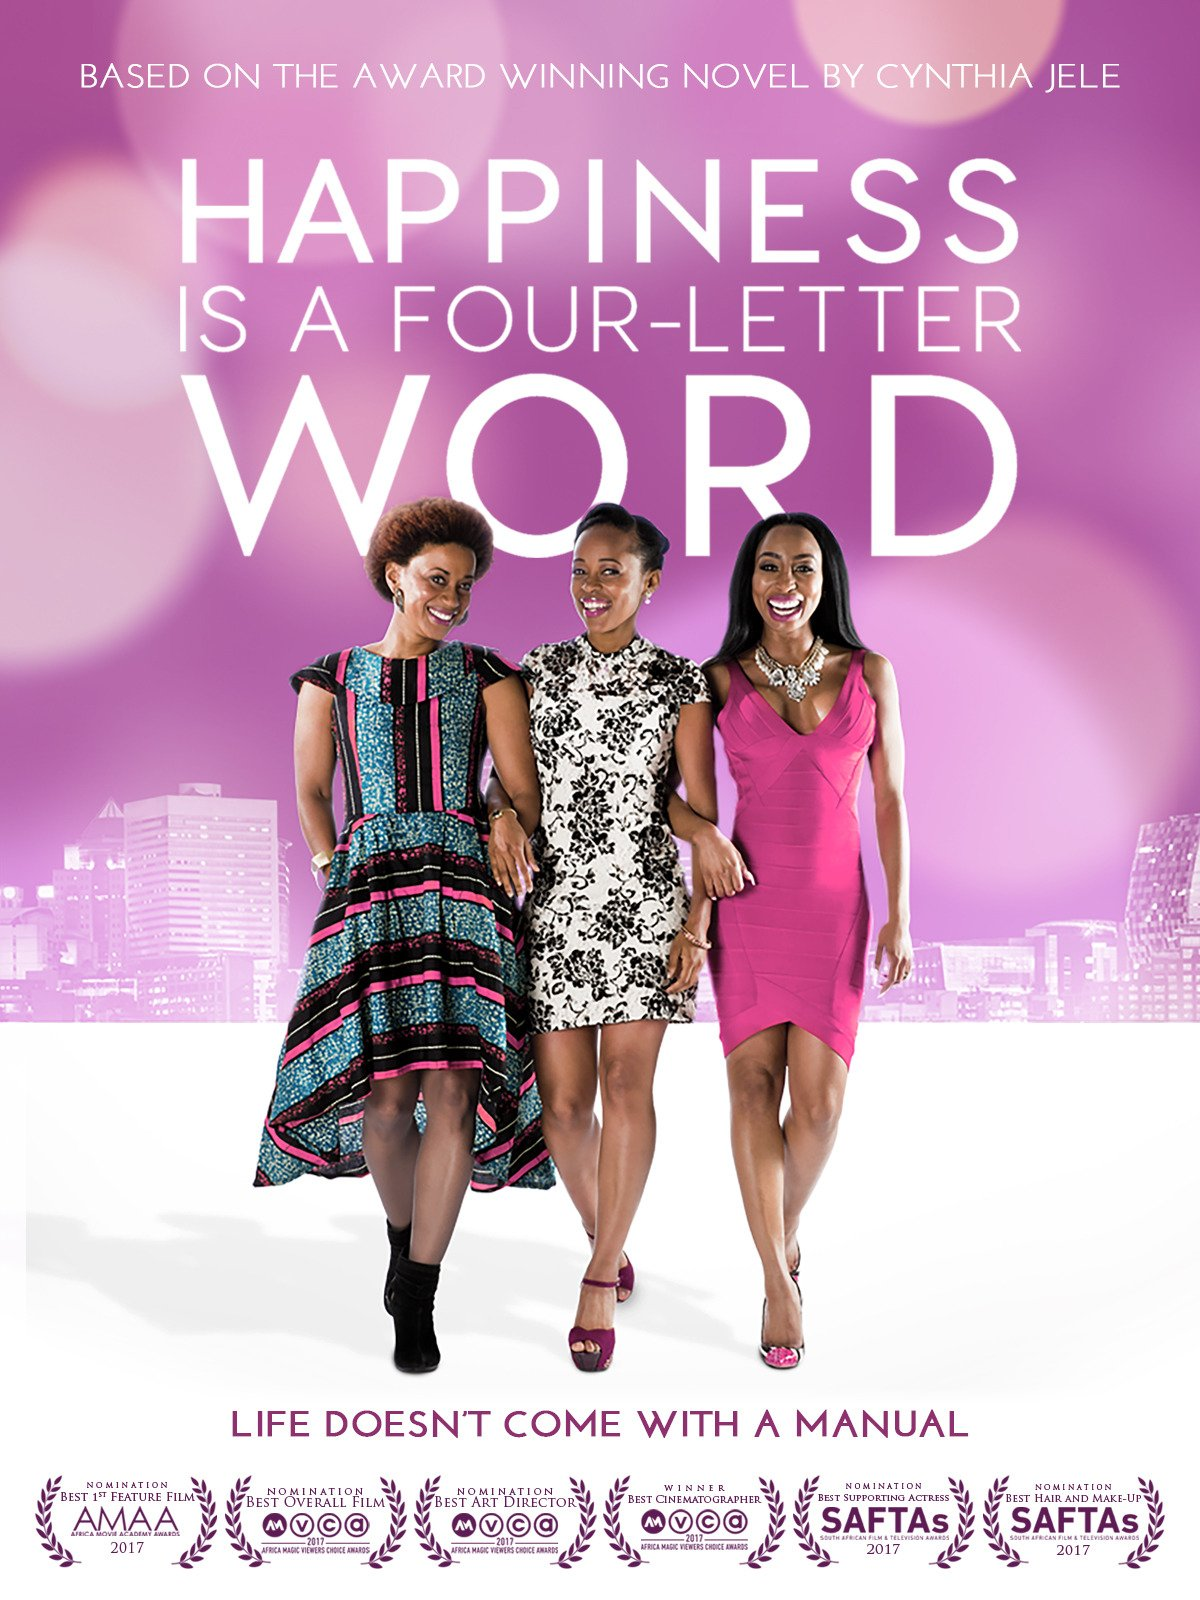 Amazon co uk: Watch Happiness Is A Four Letter Word | Prime